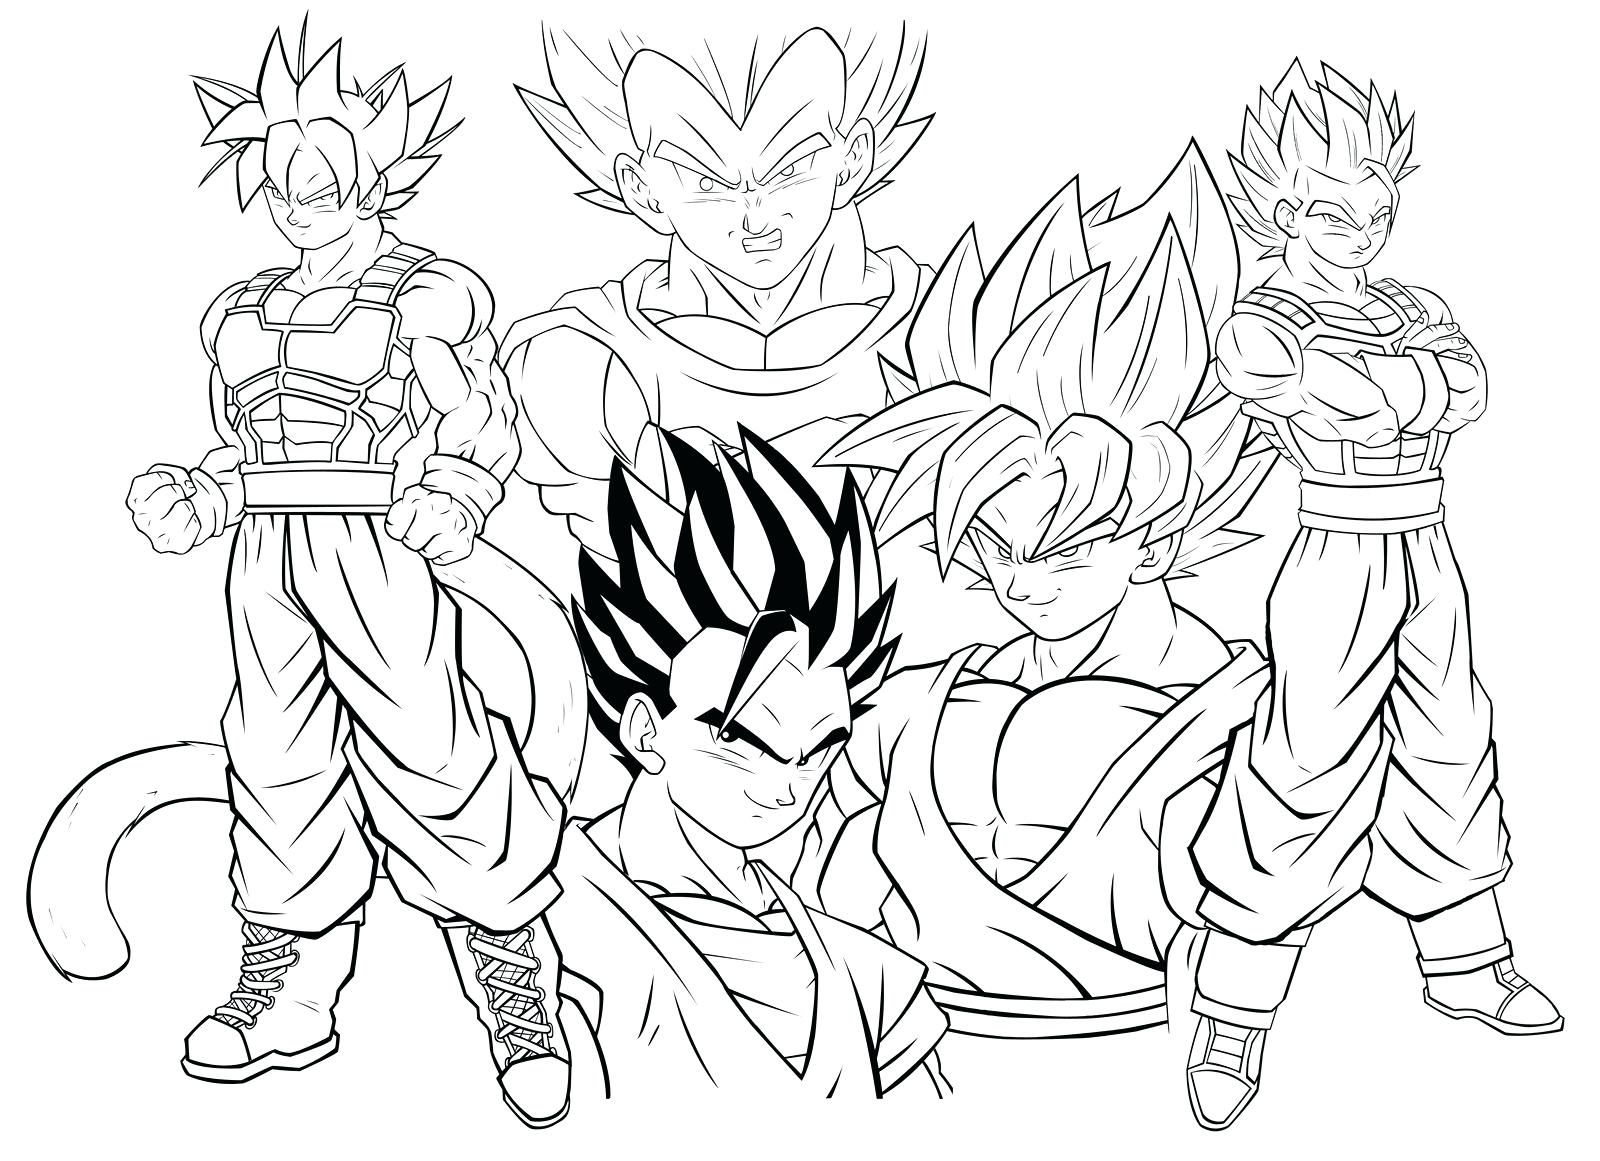 Dragonballz drawing at getdrawings free for personal use 1600x1161 how to draw kid step by dragon ball z characters new coloring publicscrutiny Gallery